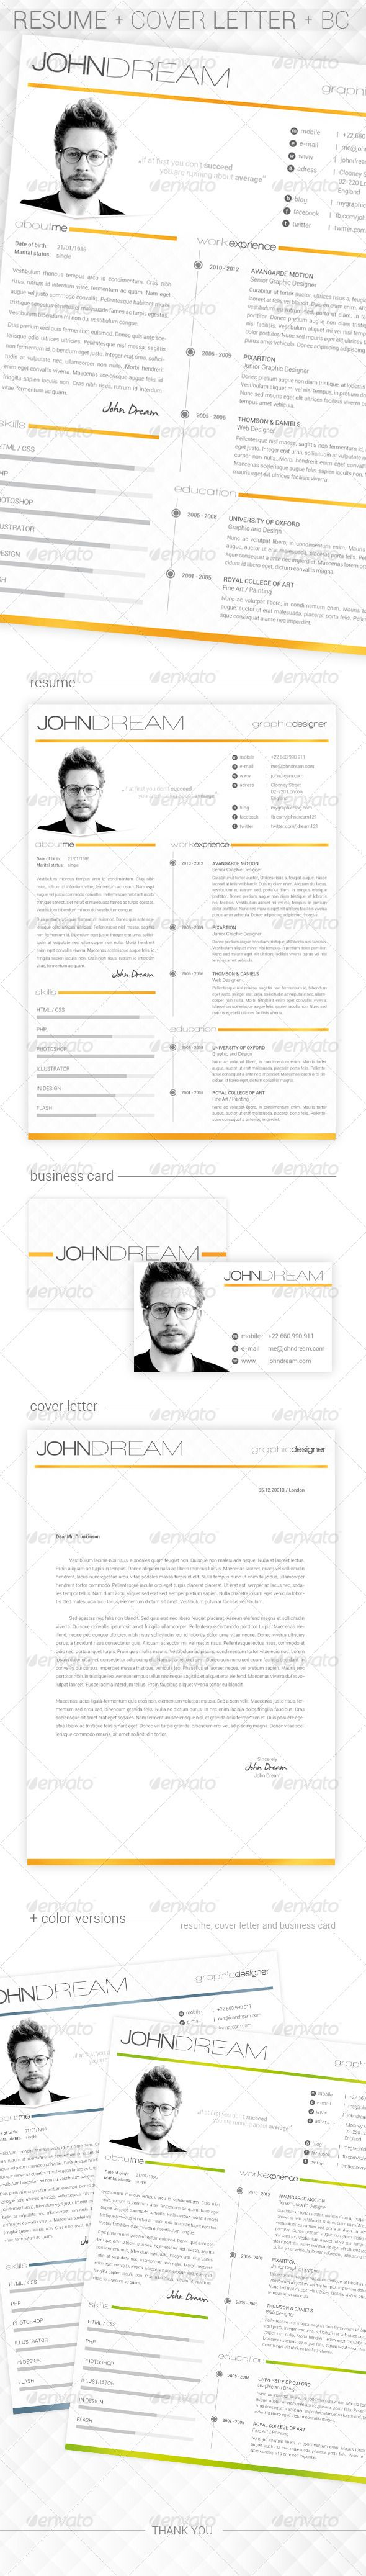 17 best images about resume infographic resume jdream resume cover letter bc